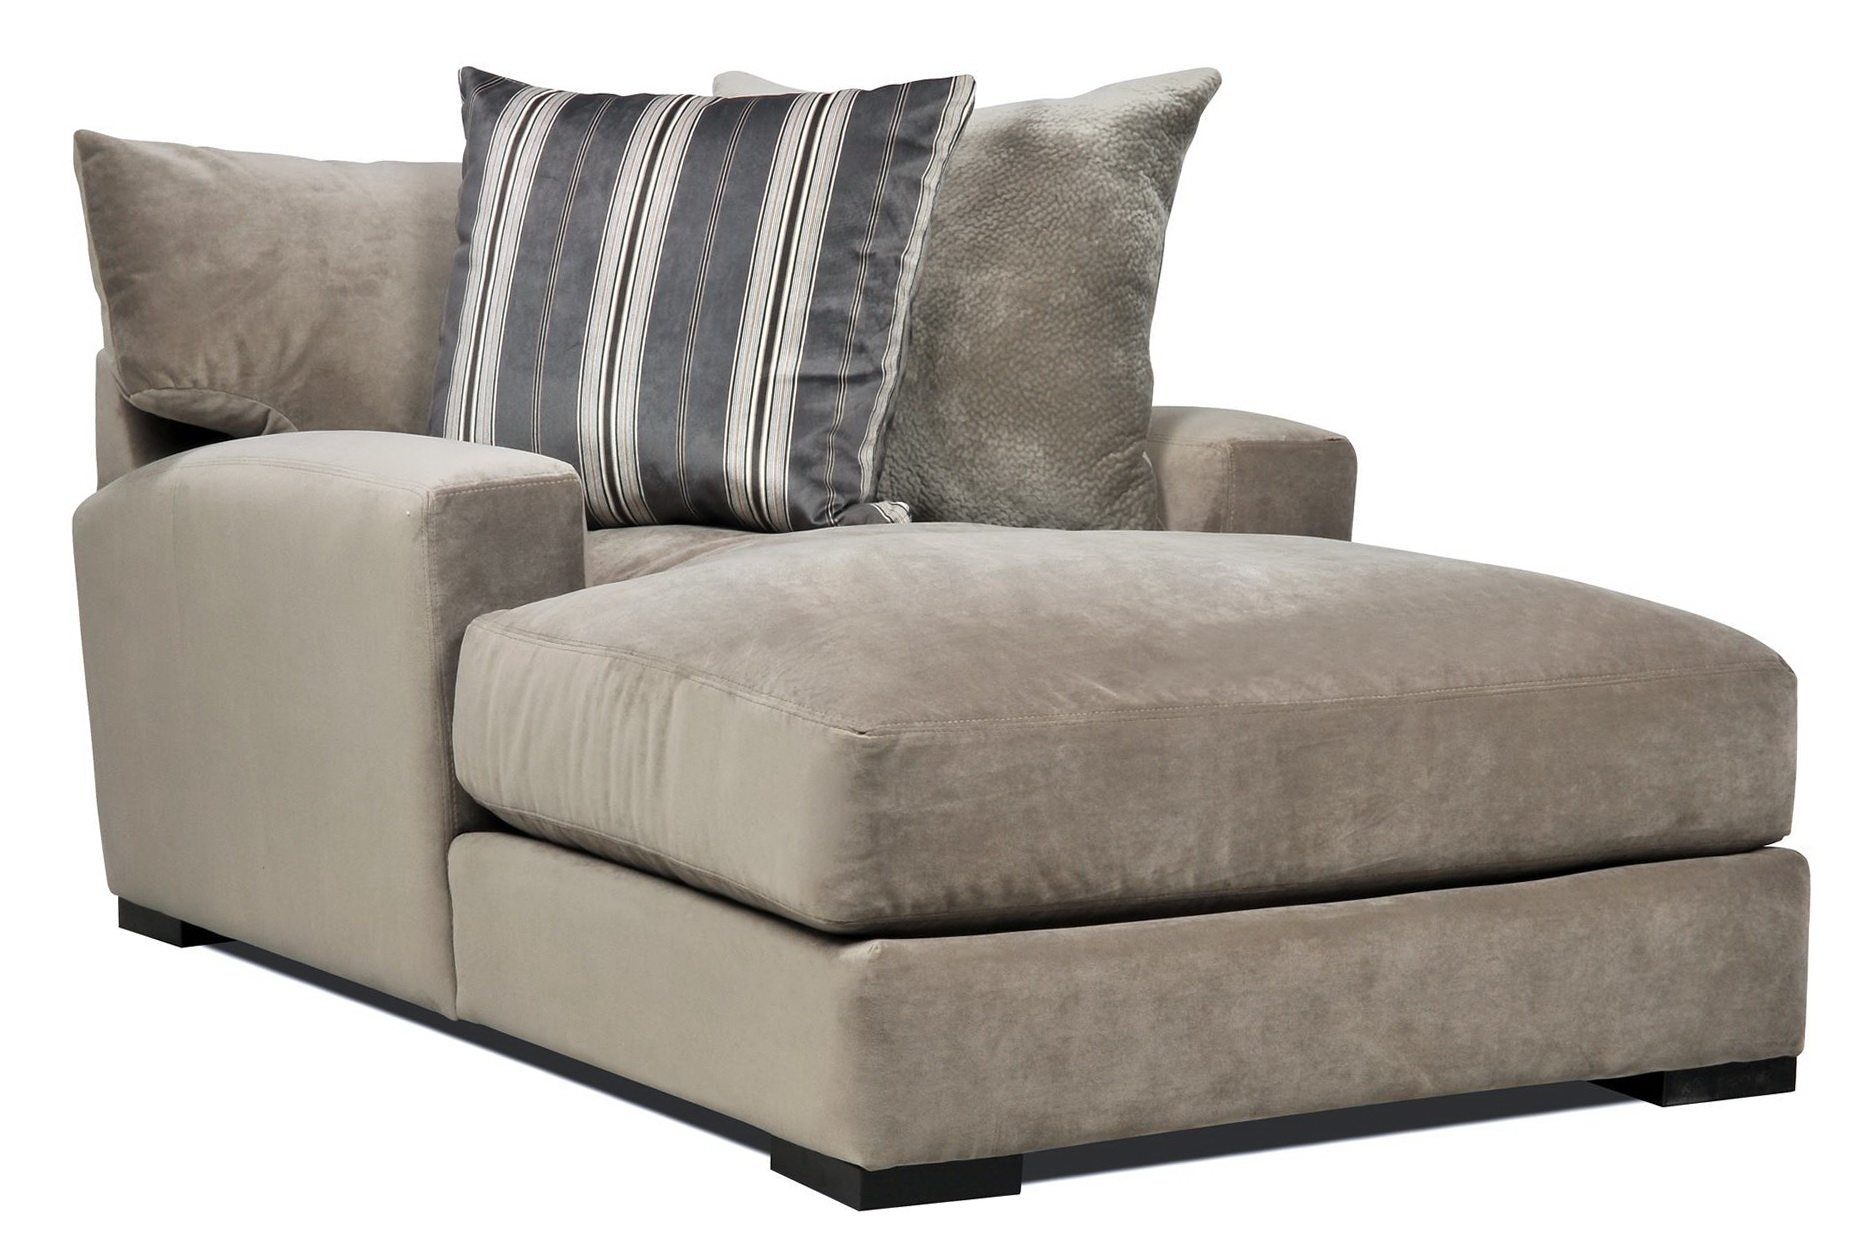 Newest Exotic Chaise Lounge Chairs Intended For Double Wide Chaise Lounge Indoor With 2 Cushions (View 9 of 15)